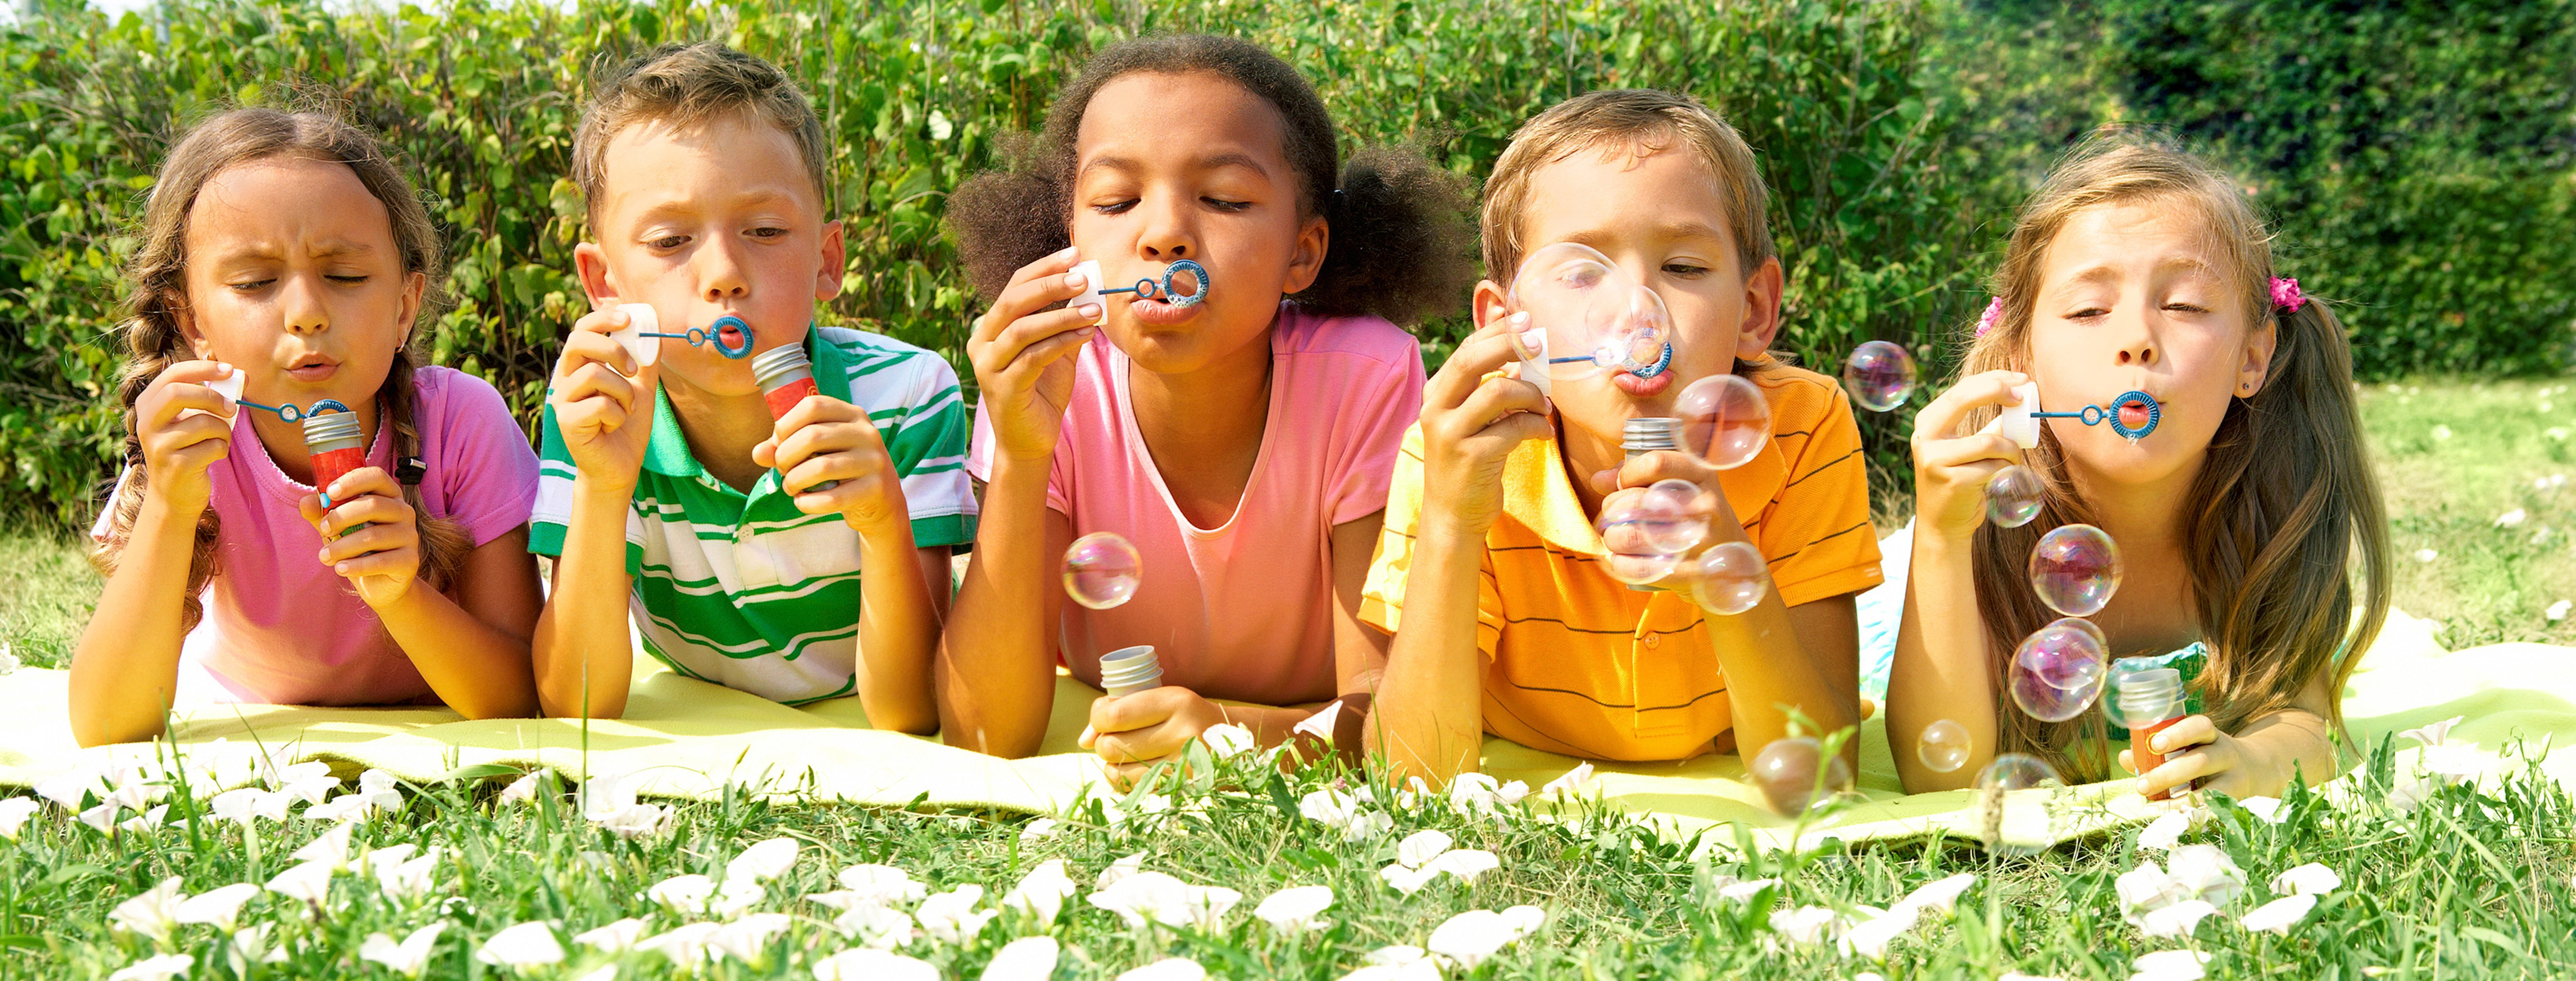 Kids blowing bubbles in grass